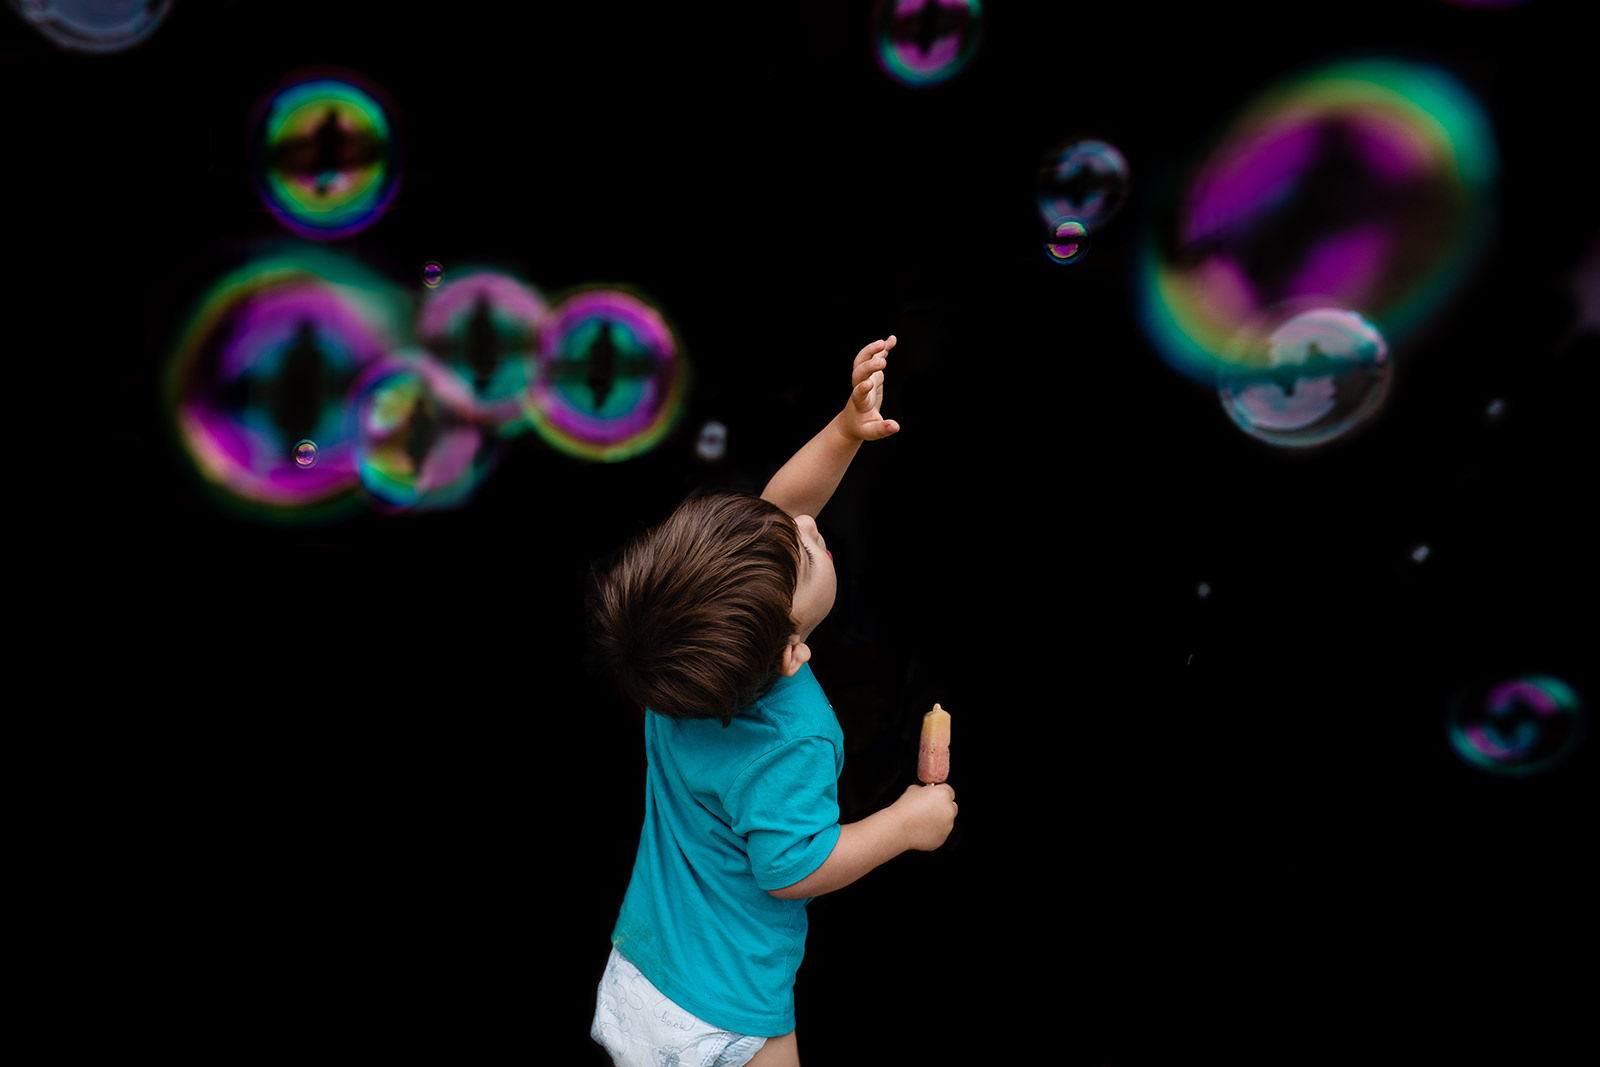 Toddler plays with bubbles in front of dark background